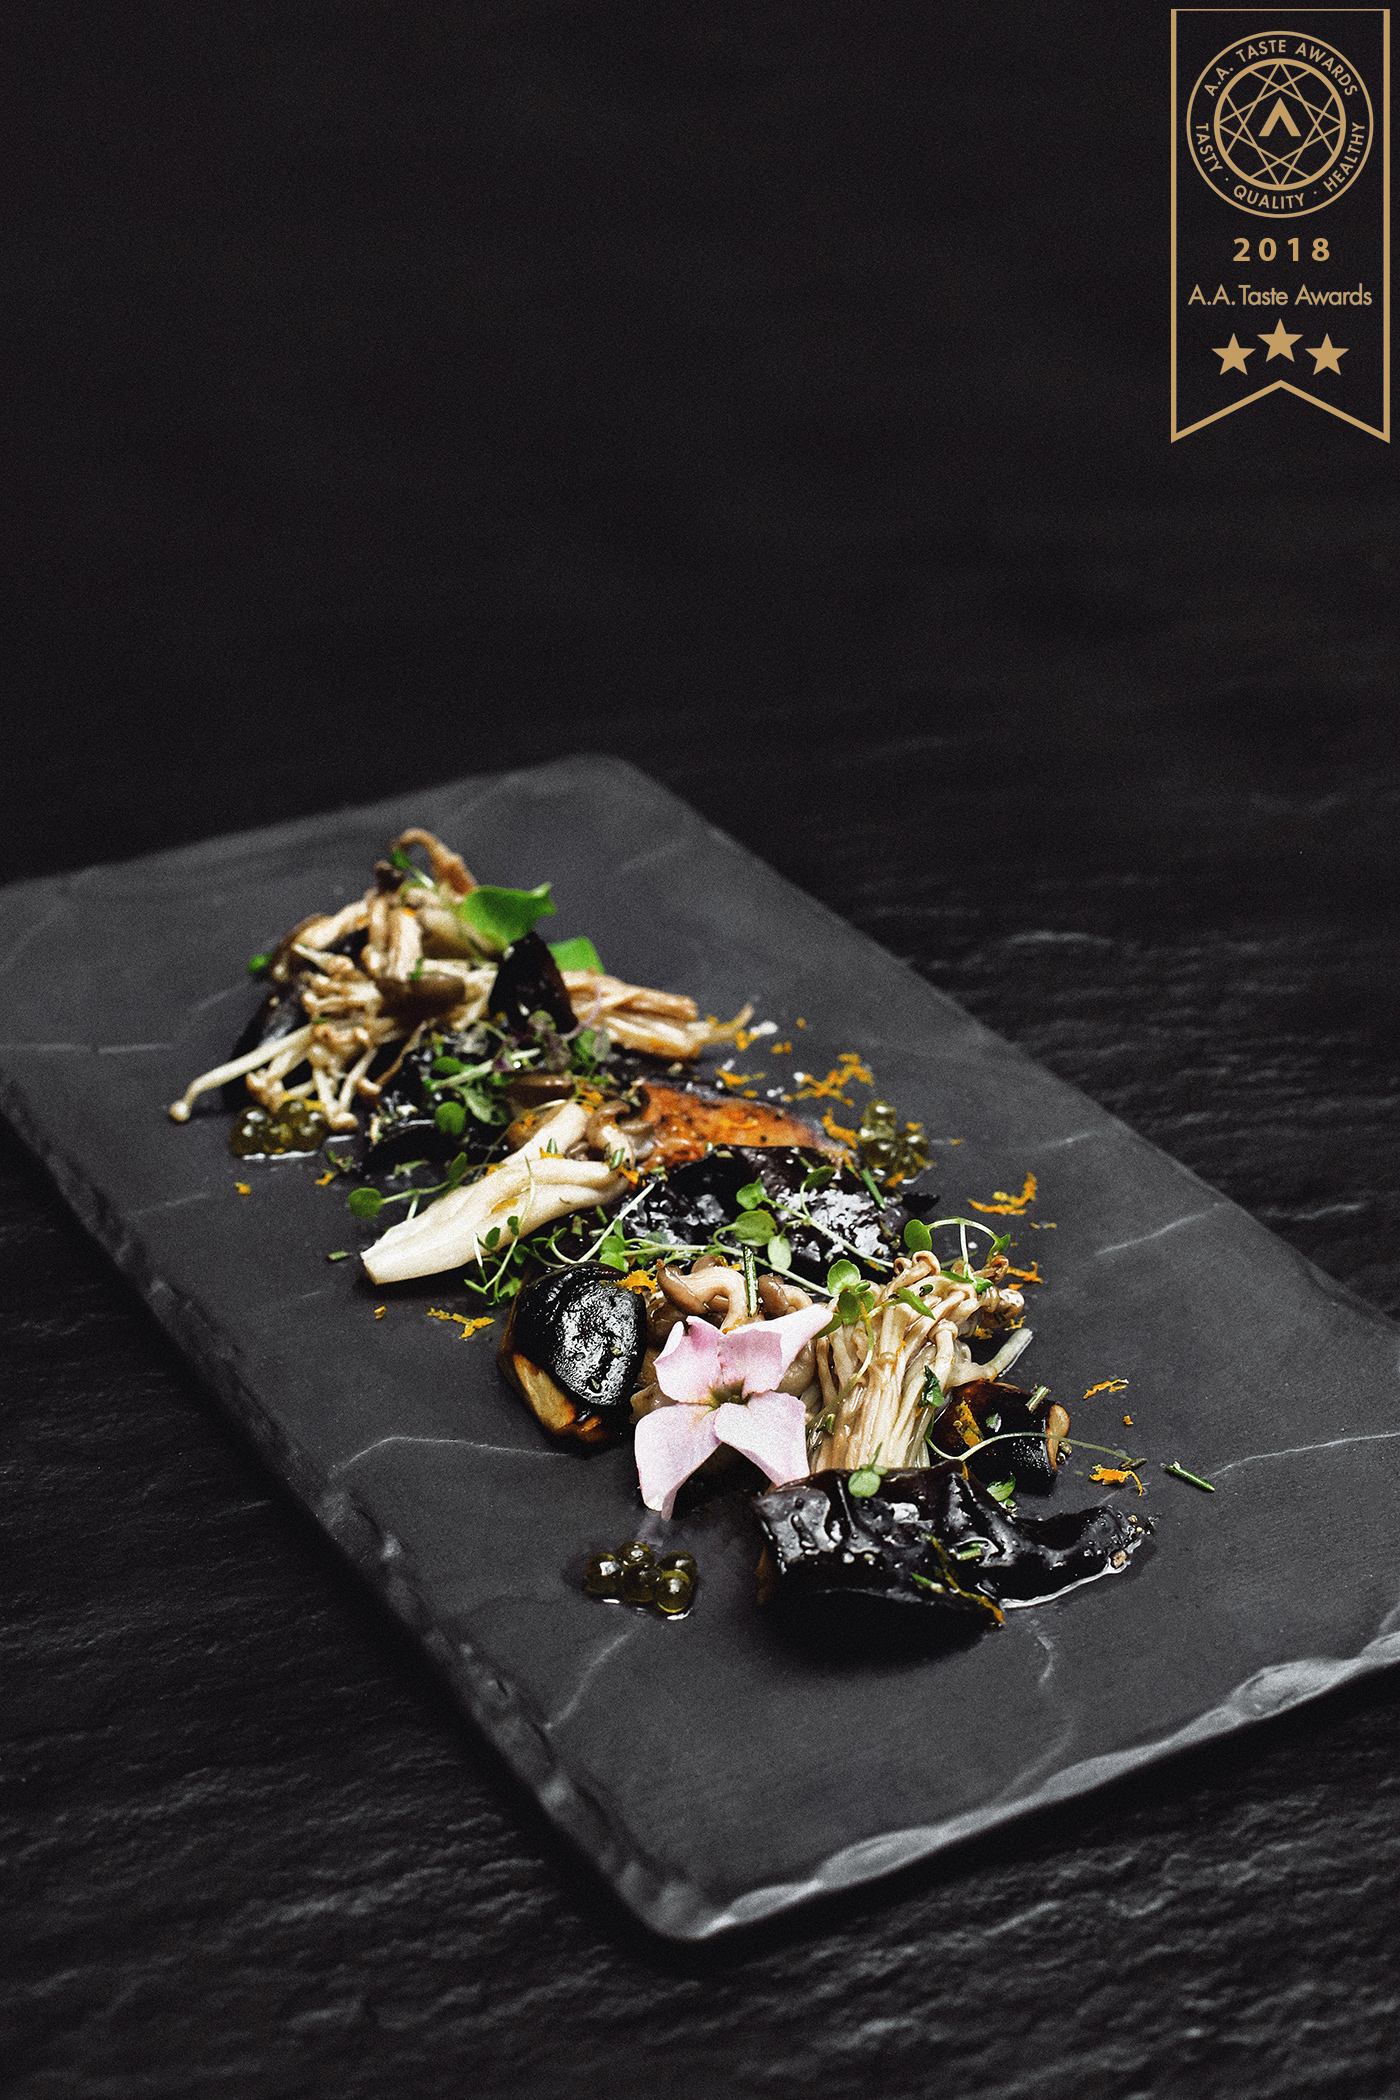 A.A. Taste Award 2018 Asia Pacific Best Restaurant Australia's 2019 Award Winning Restaurants: Chef Hats Announced Deer Duck Bistro